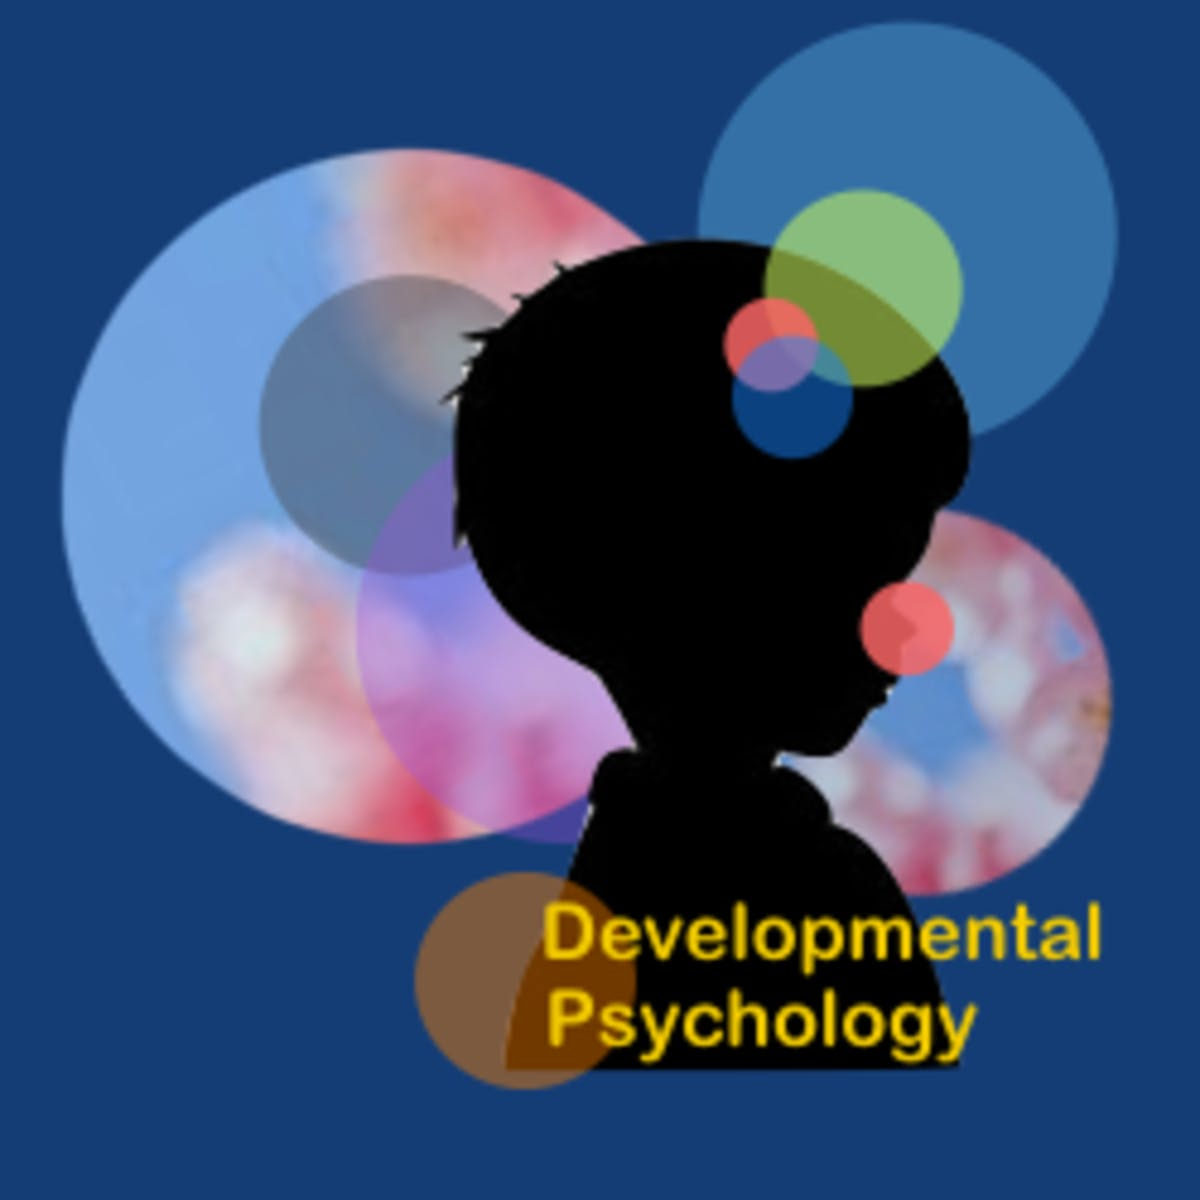 發展心理學:哲學觀與方法論 (The philosophical bases and methodology of developmental psychology)